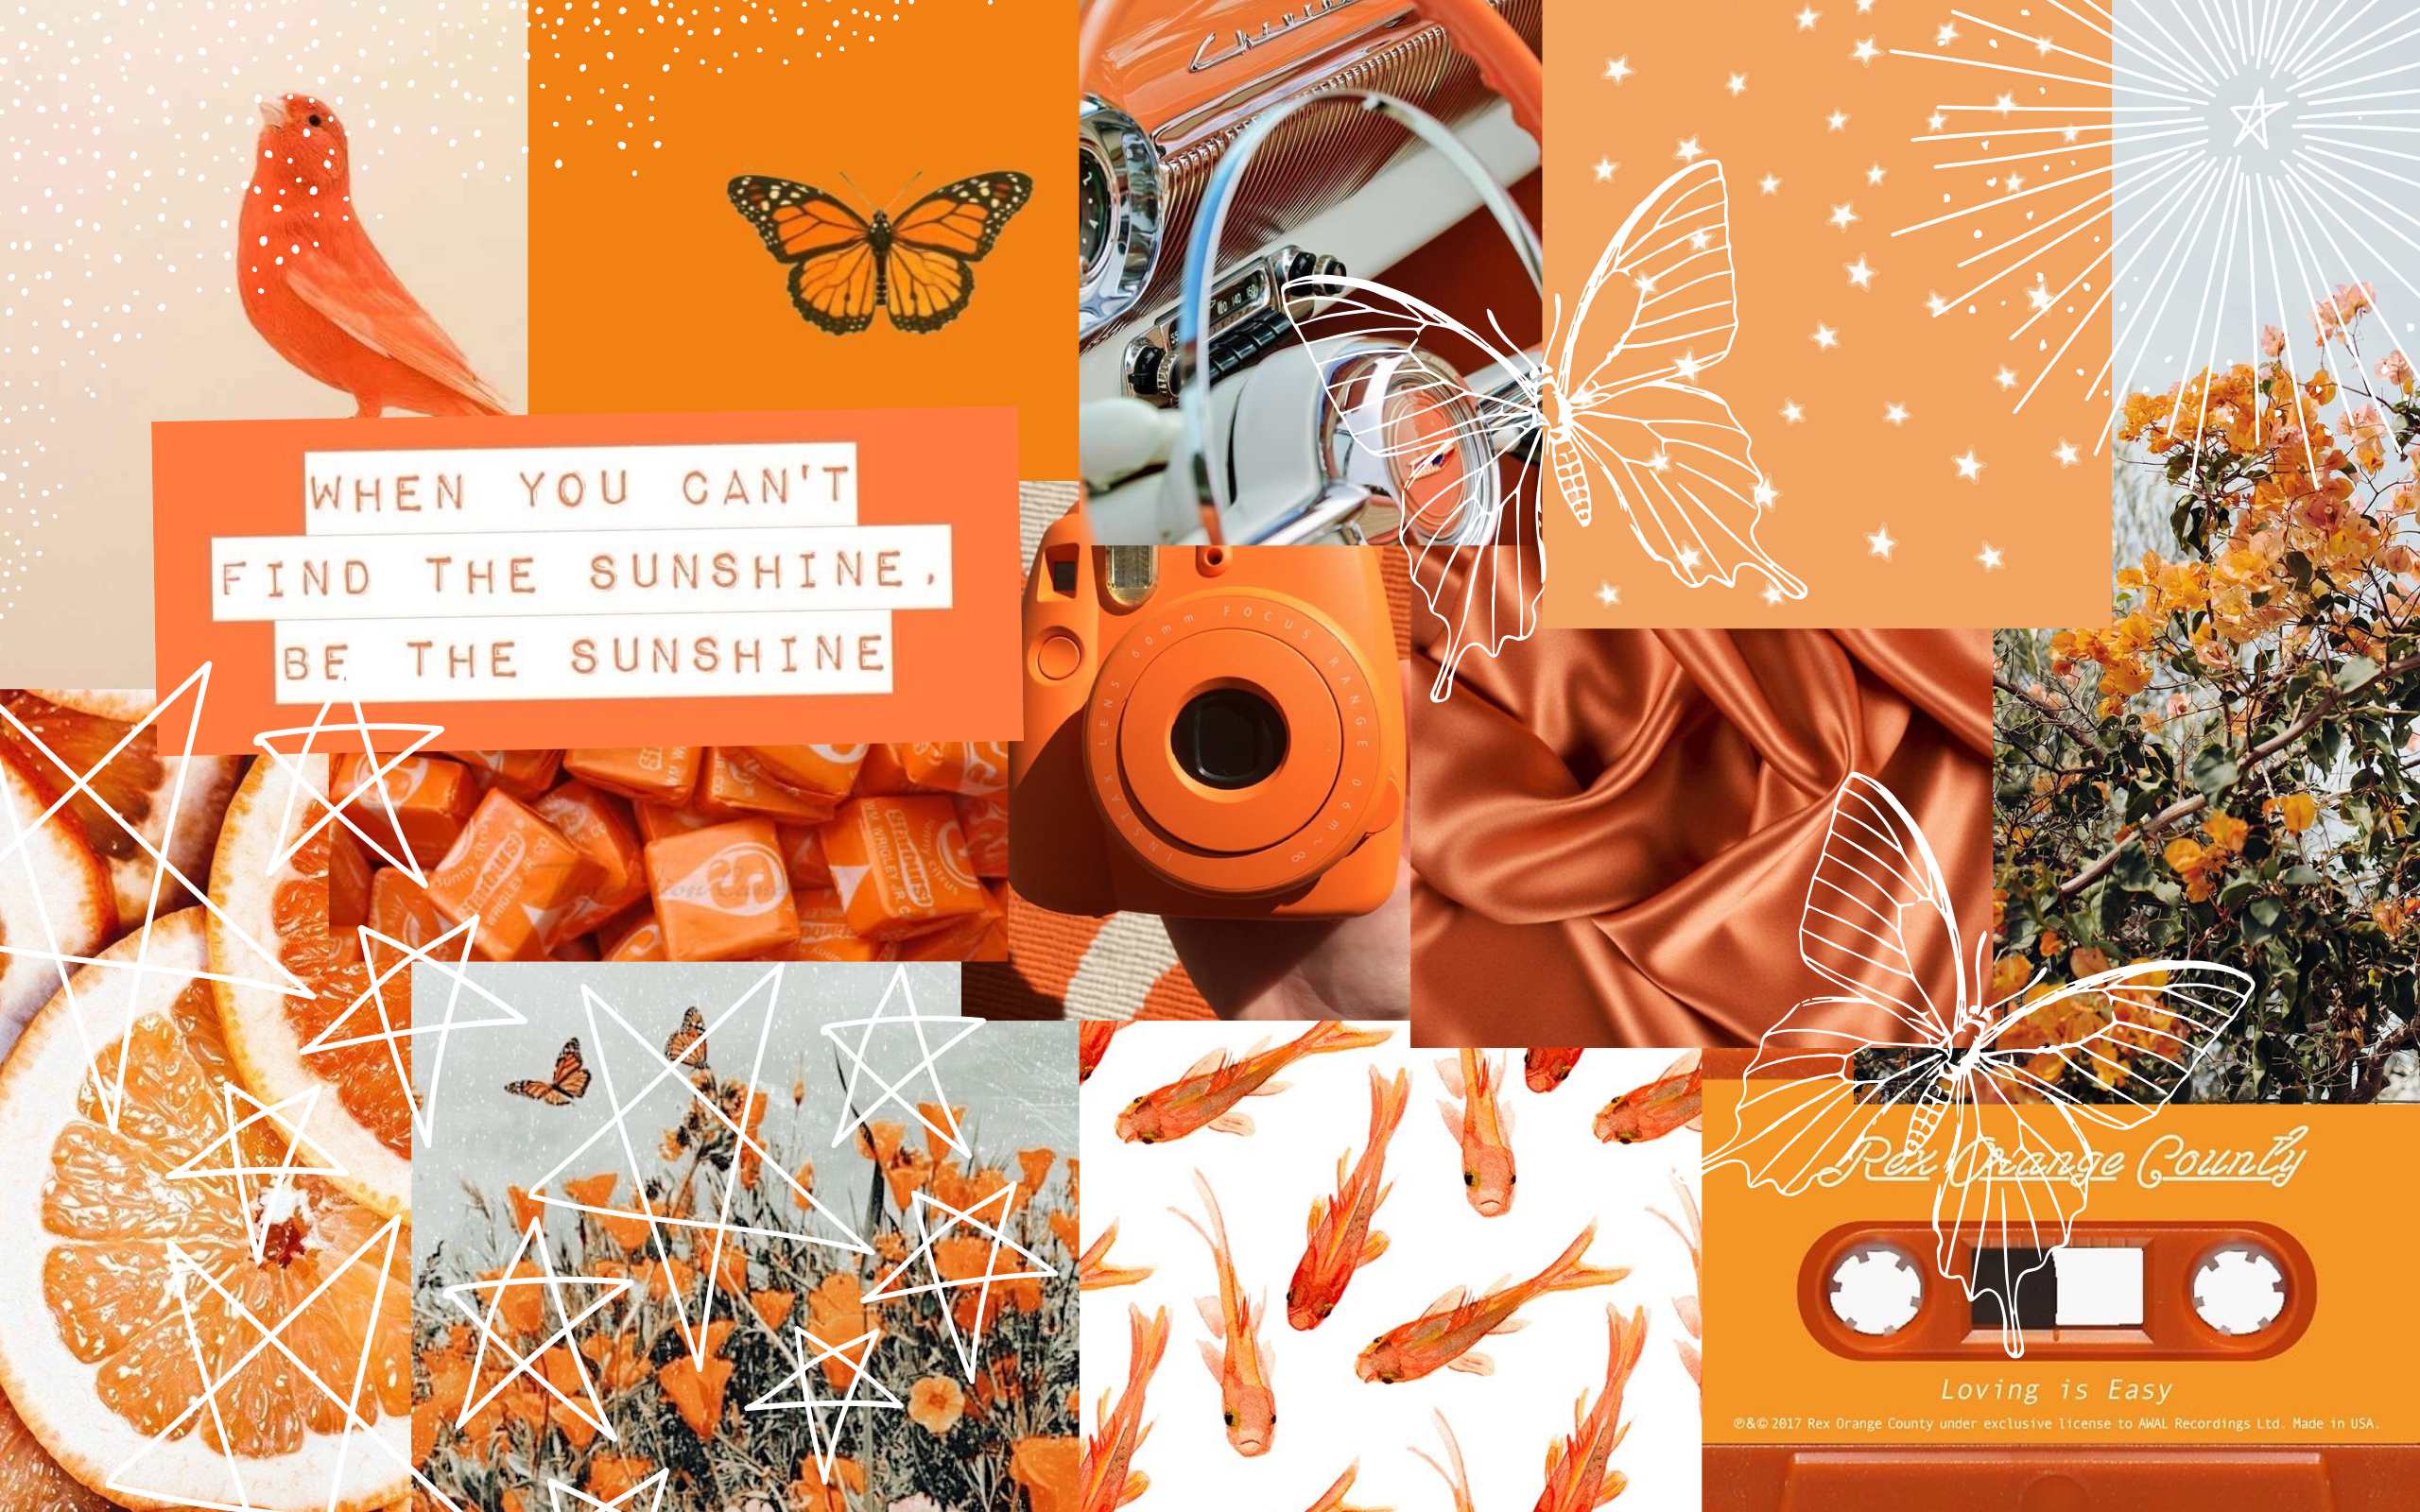 Tons of awesome orange aesthetic pc wallpapers to download for free. Aesthetic wallpaper laptop orange in 2020 | Macbook ...